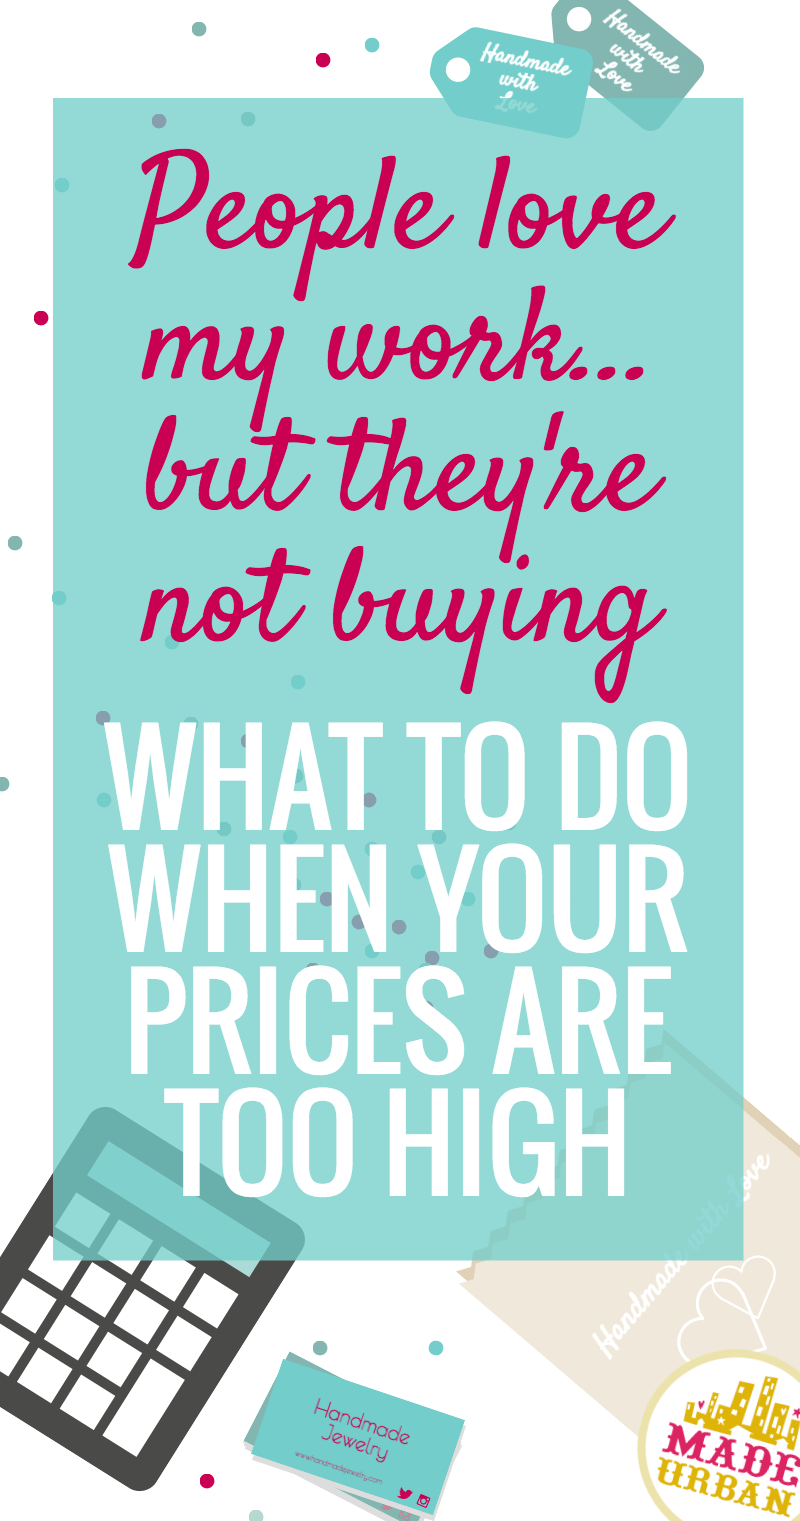 What to do When your Prices are Too High